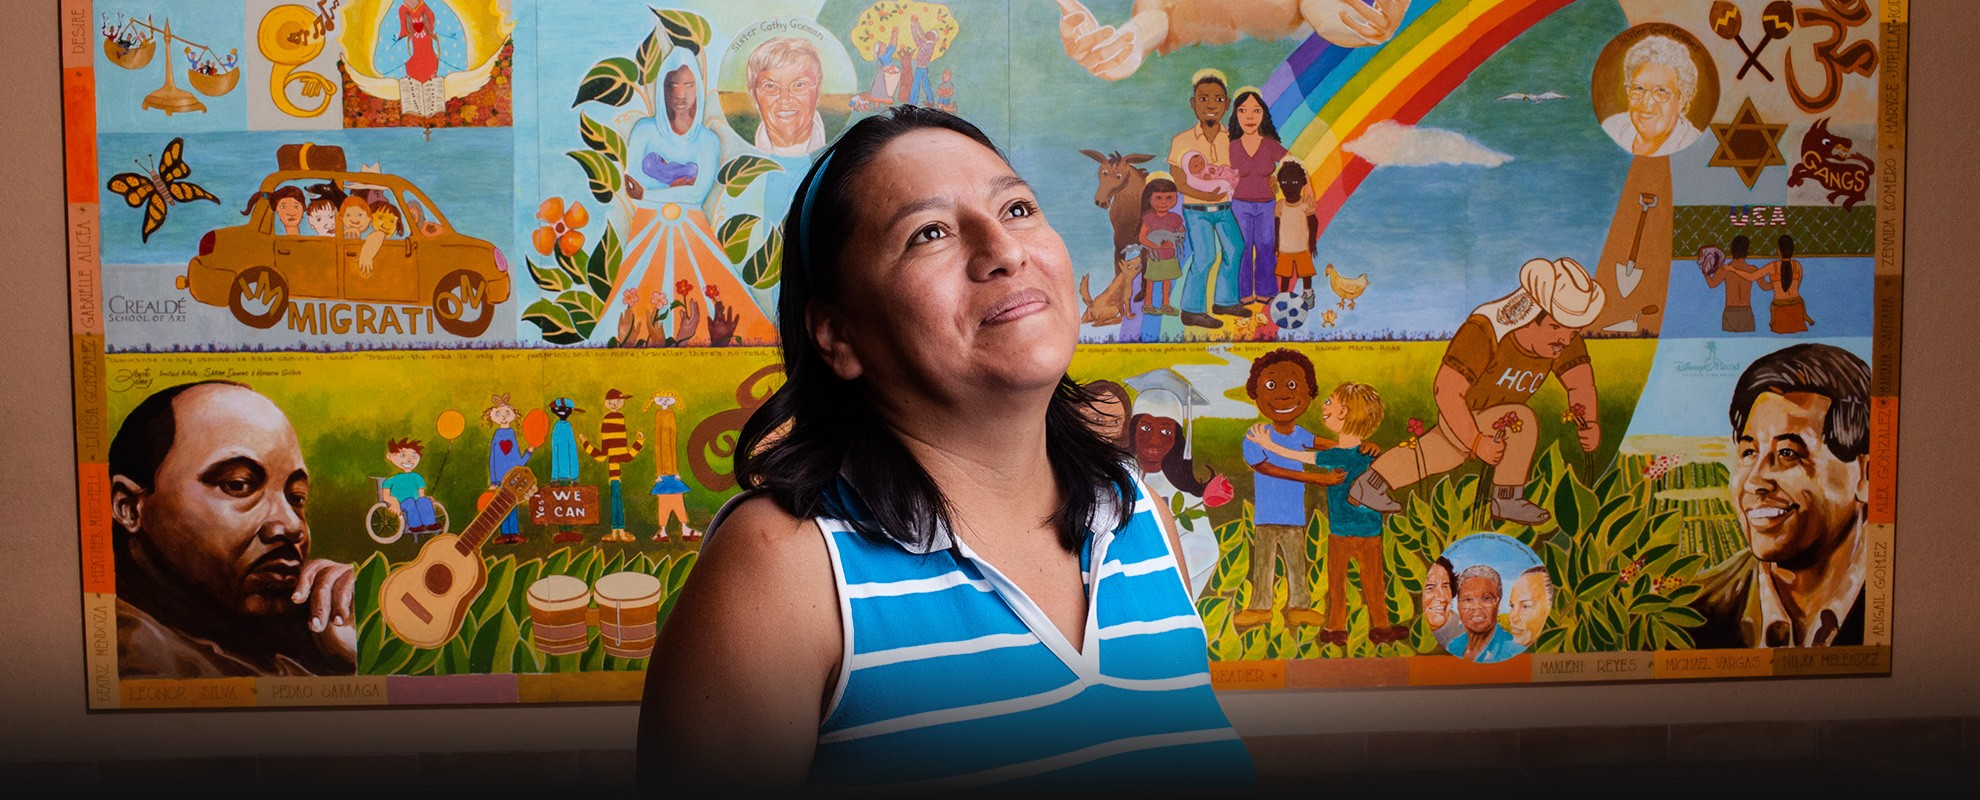 Olivia Flores, a farmworker in a Florida nursery, mixed chemicals with few protections or handling instructions.